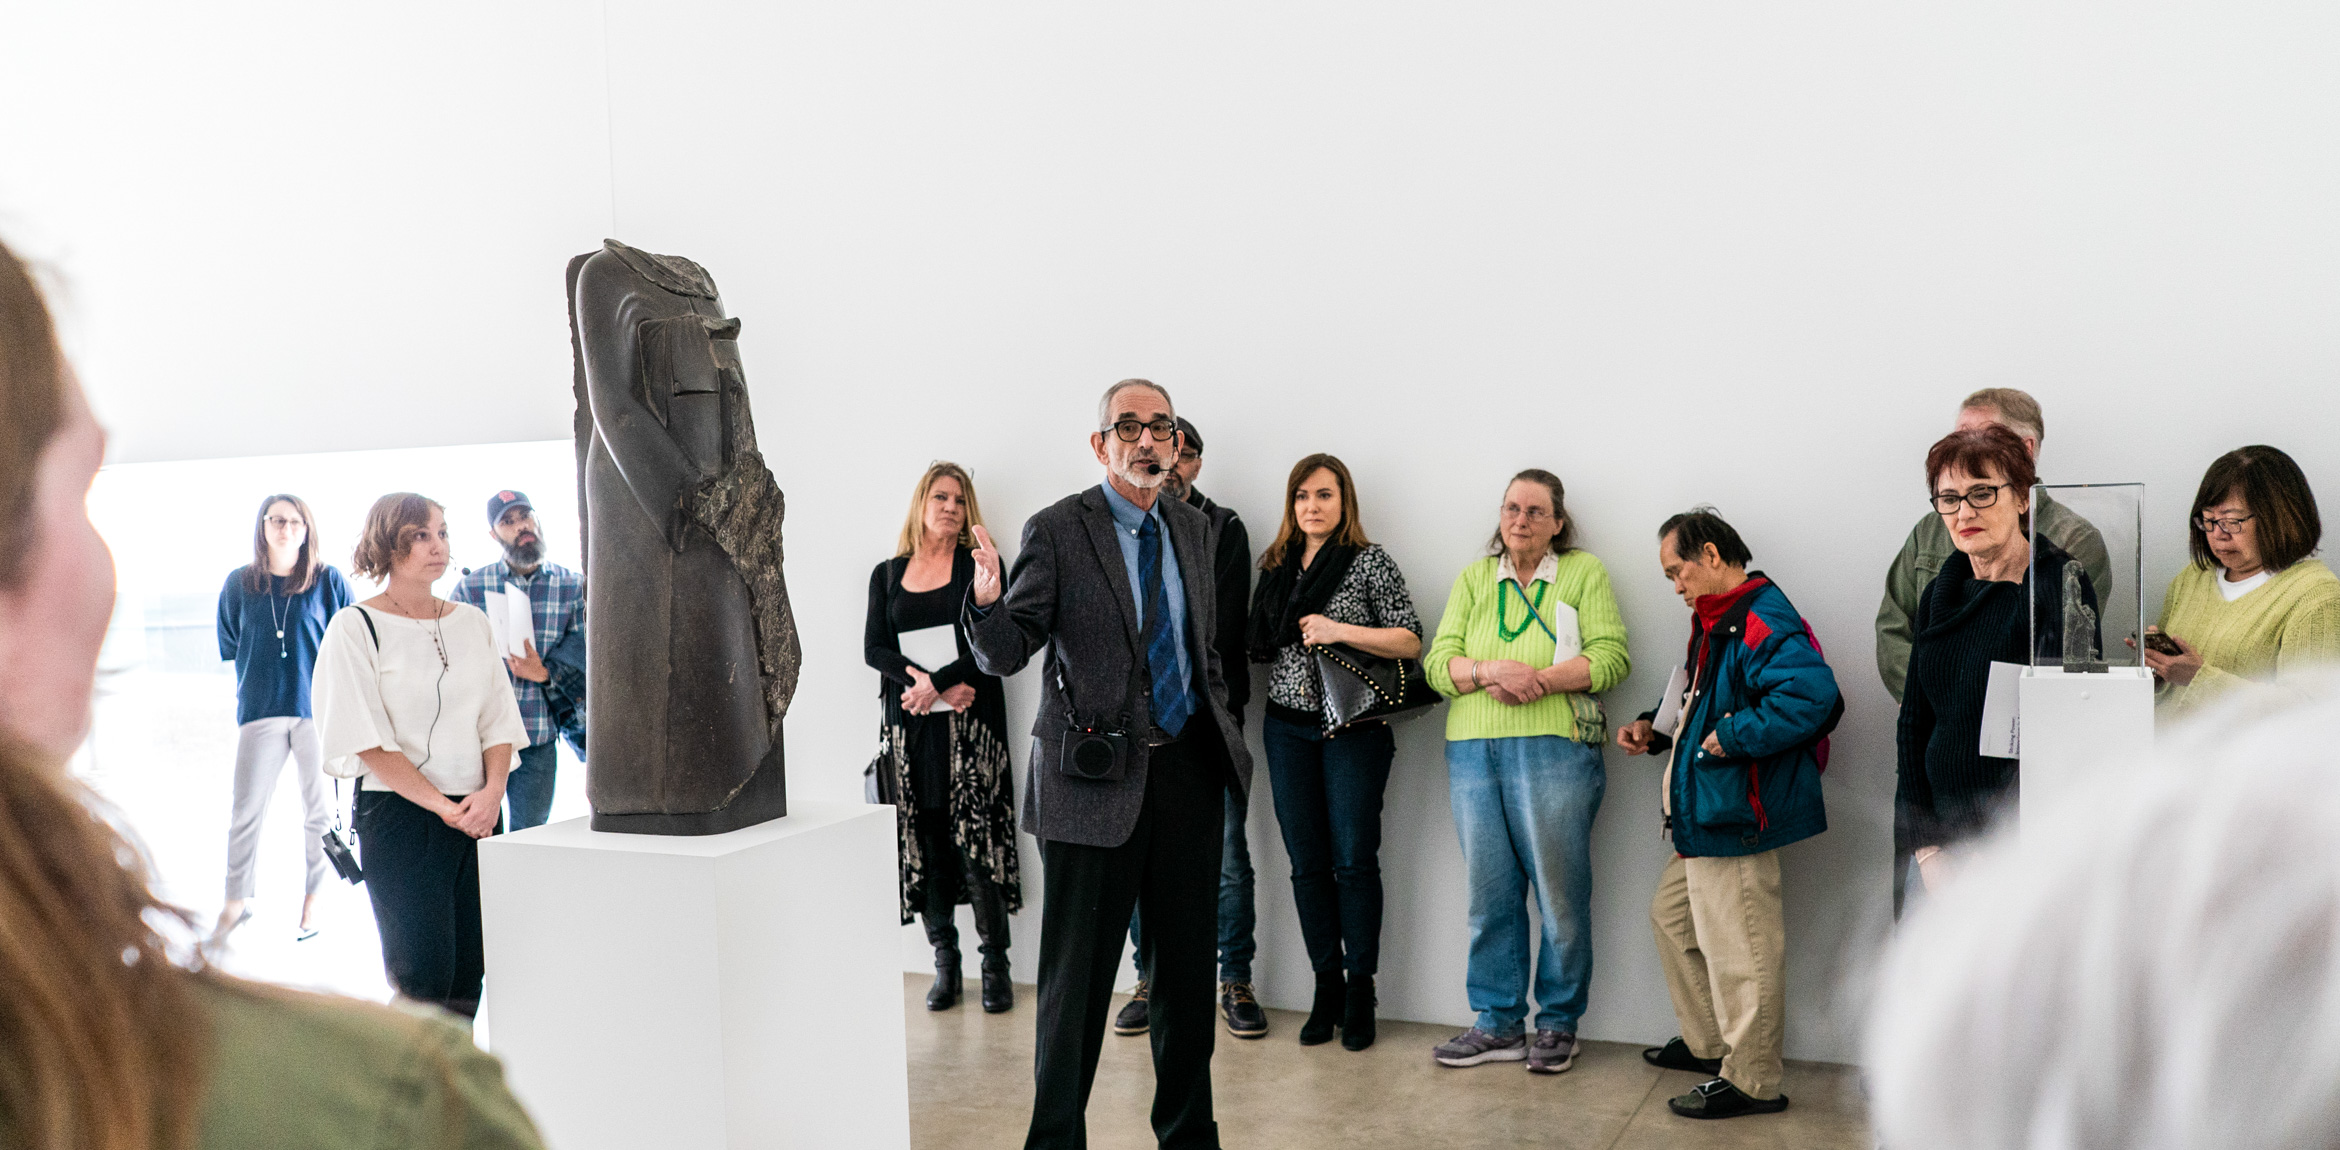 Ed Bleiberg speaks in the Main Gallery to a large circle of attendees, gesturing at a beheaded Egyptian sculpture.